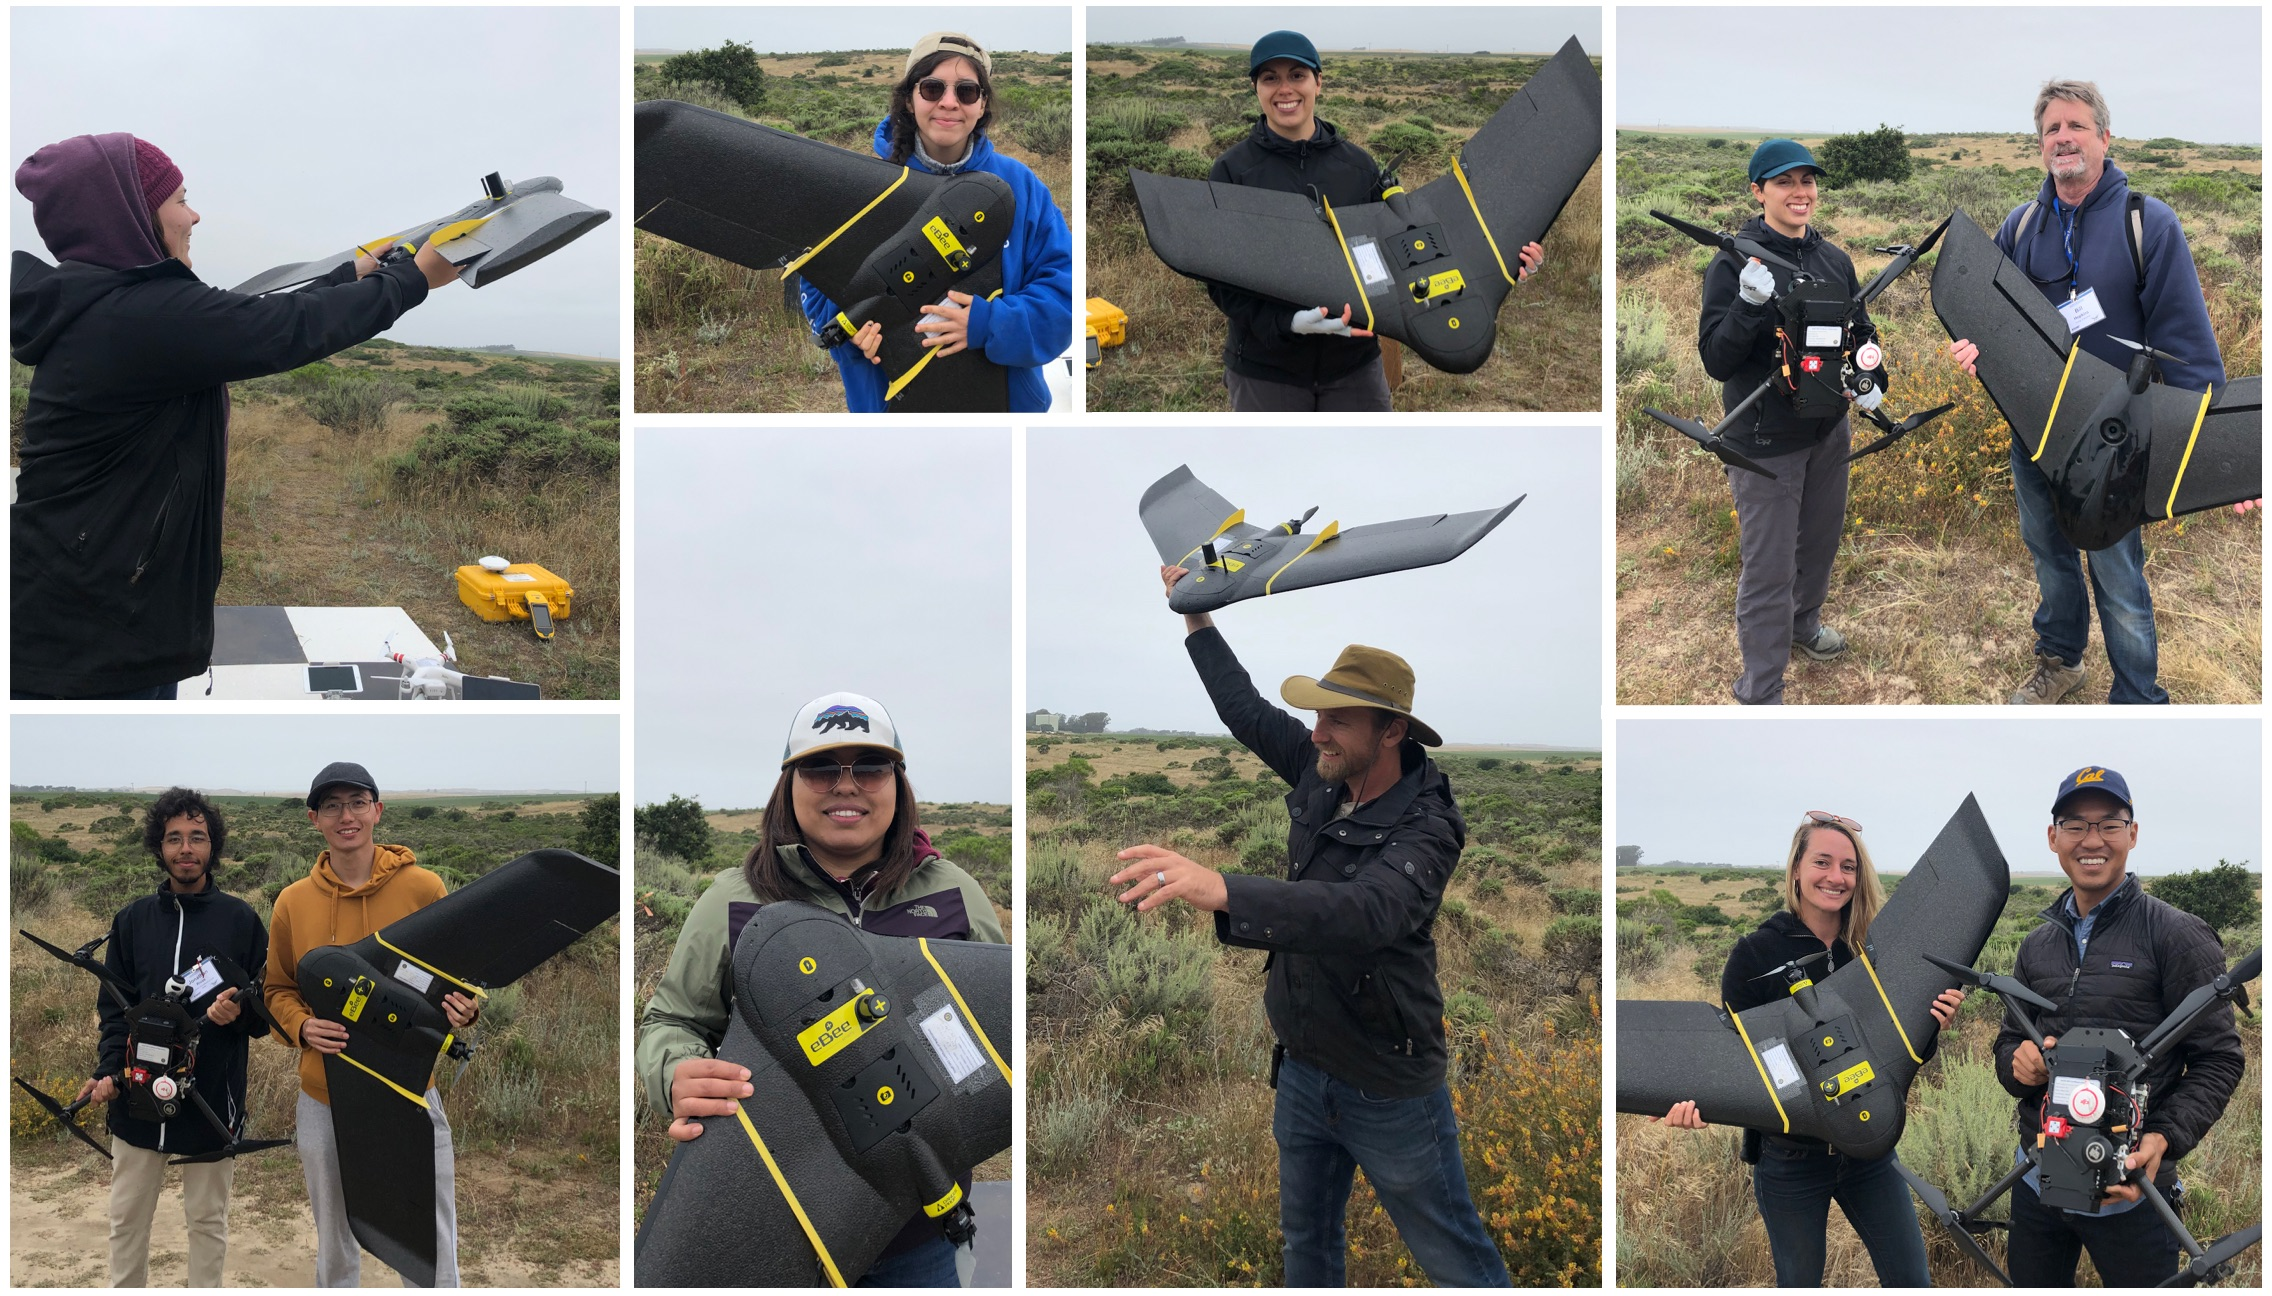 campers posing with uavs.